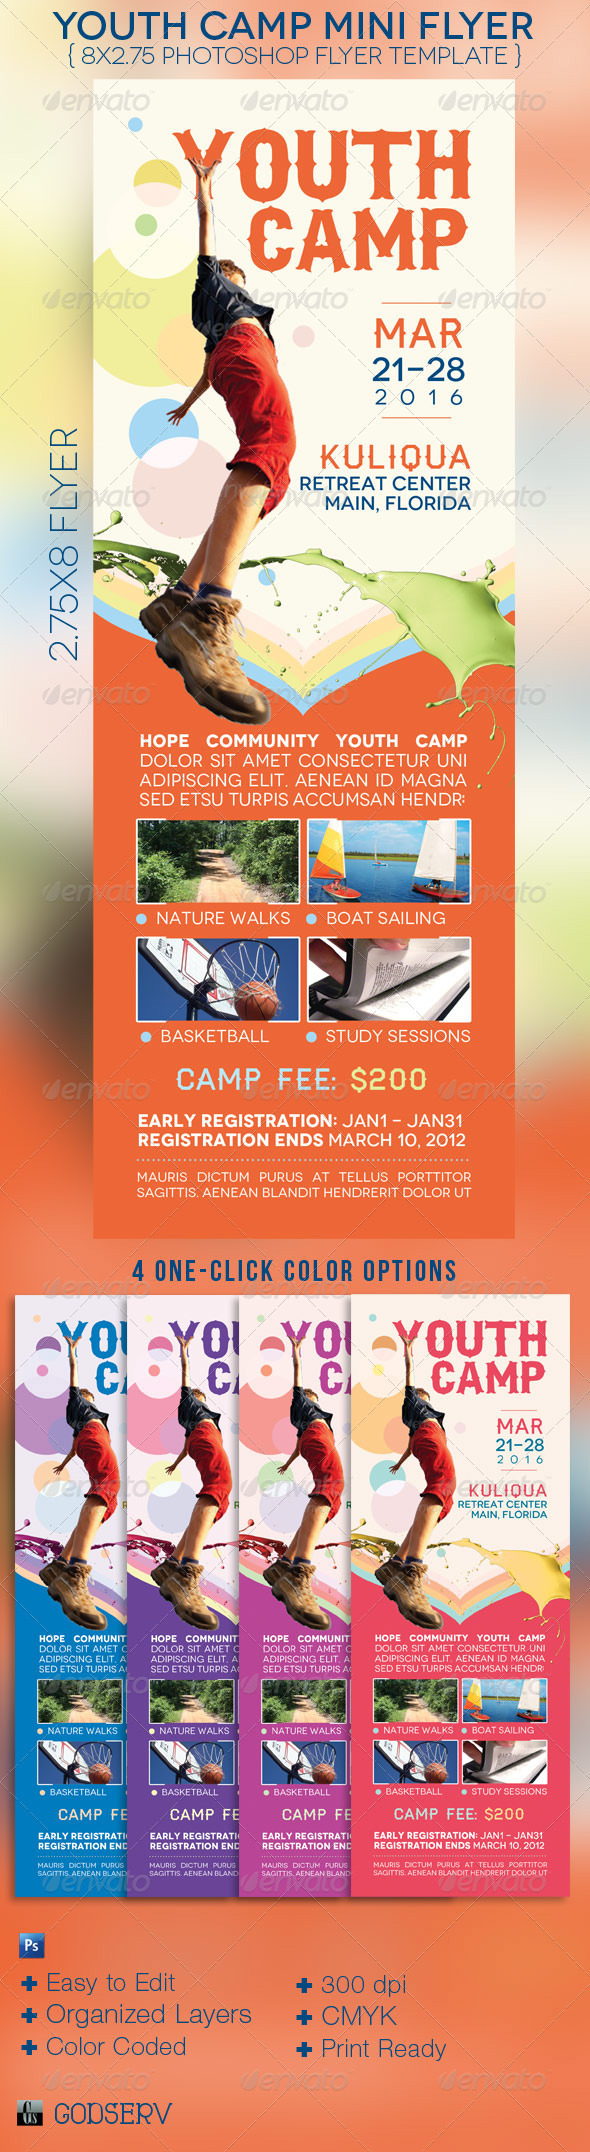 youth camp mini flyer template on behance